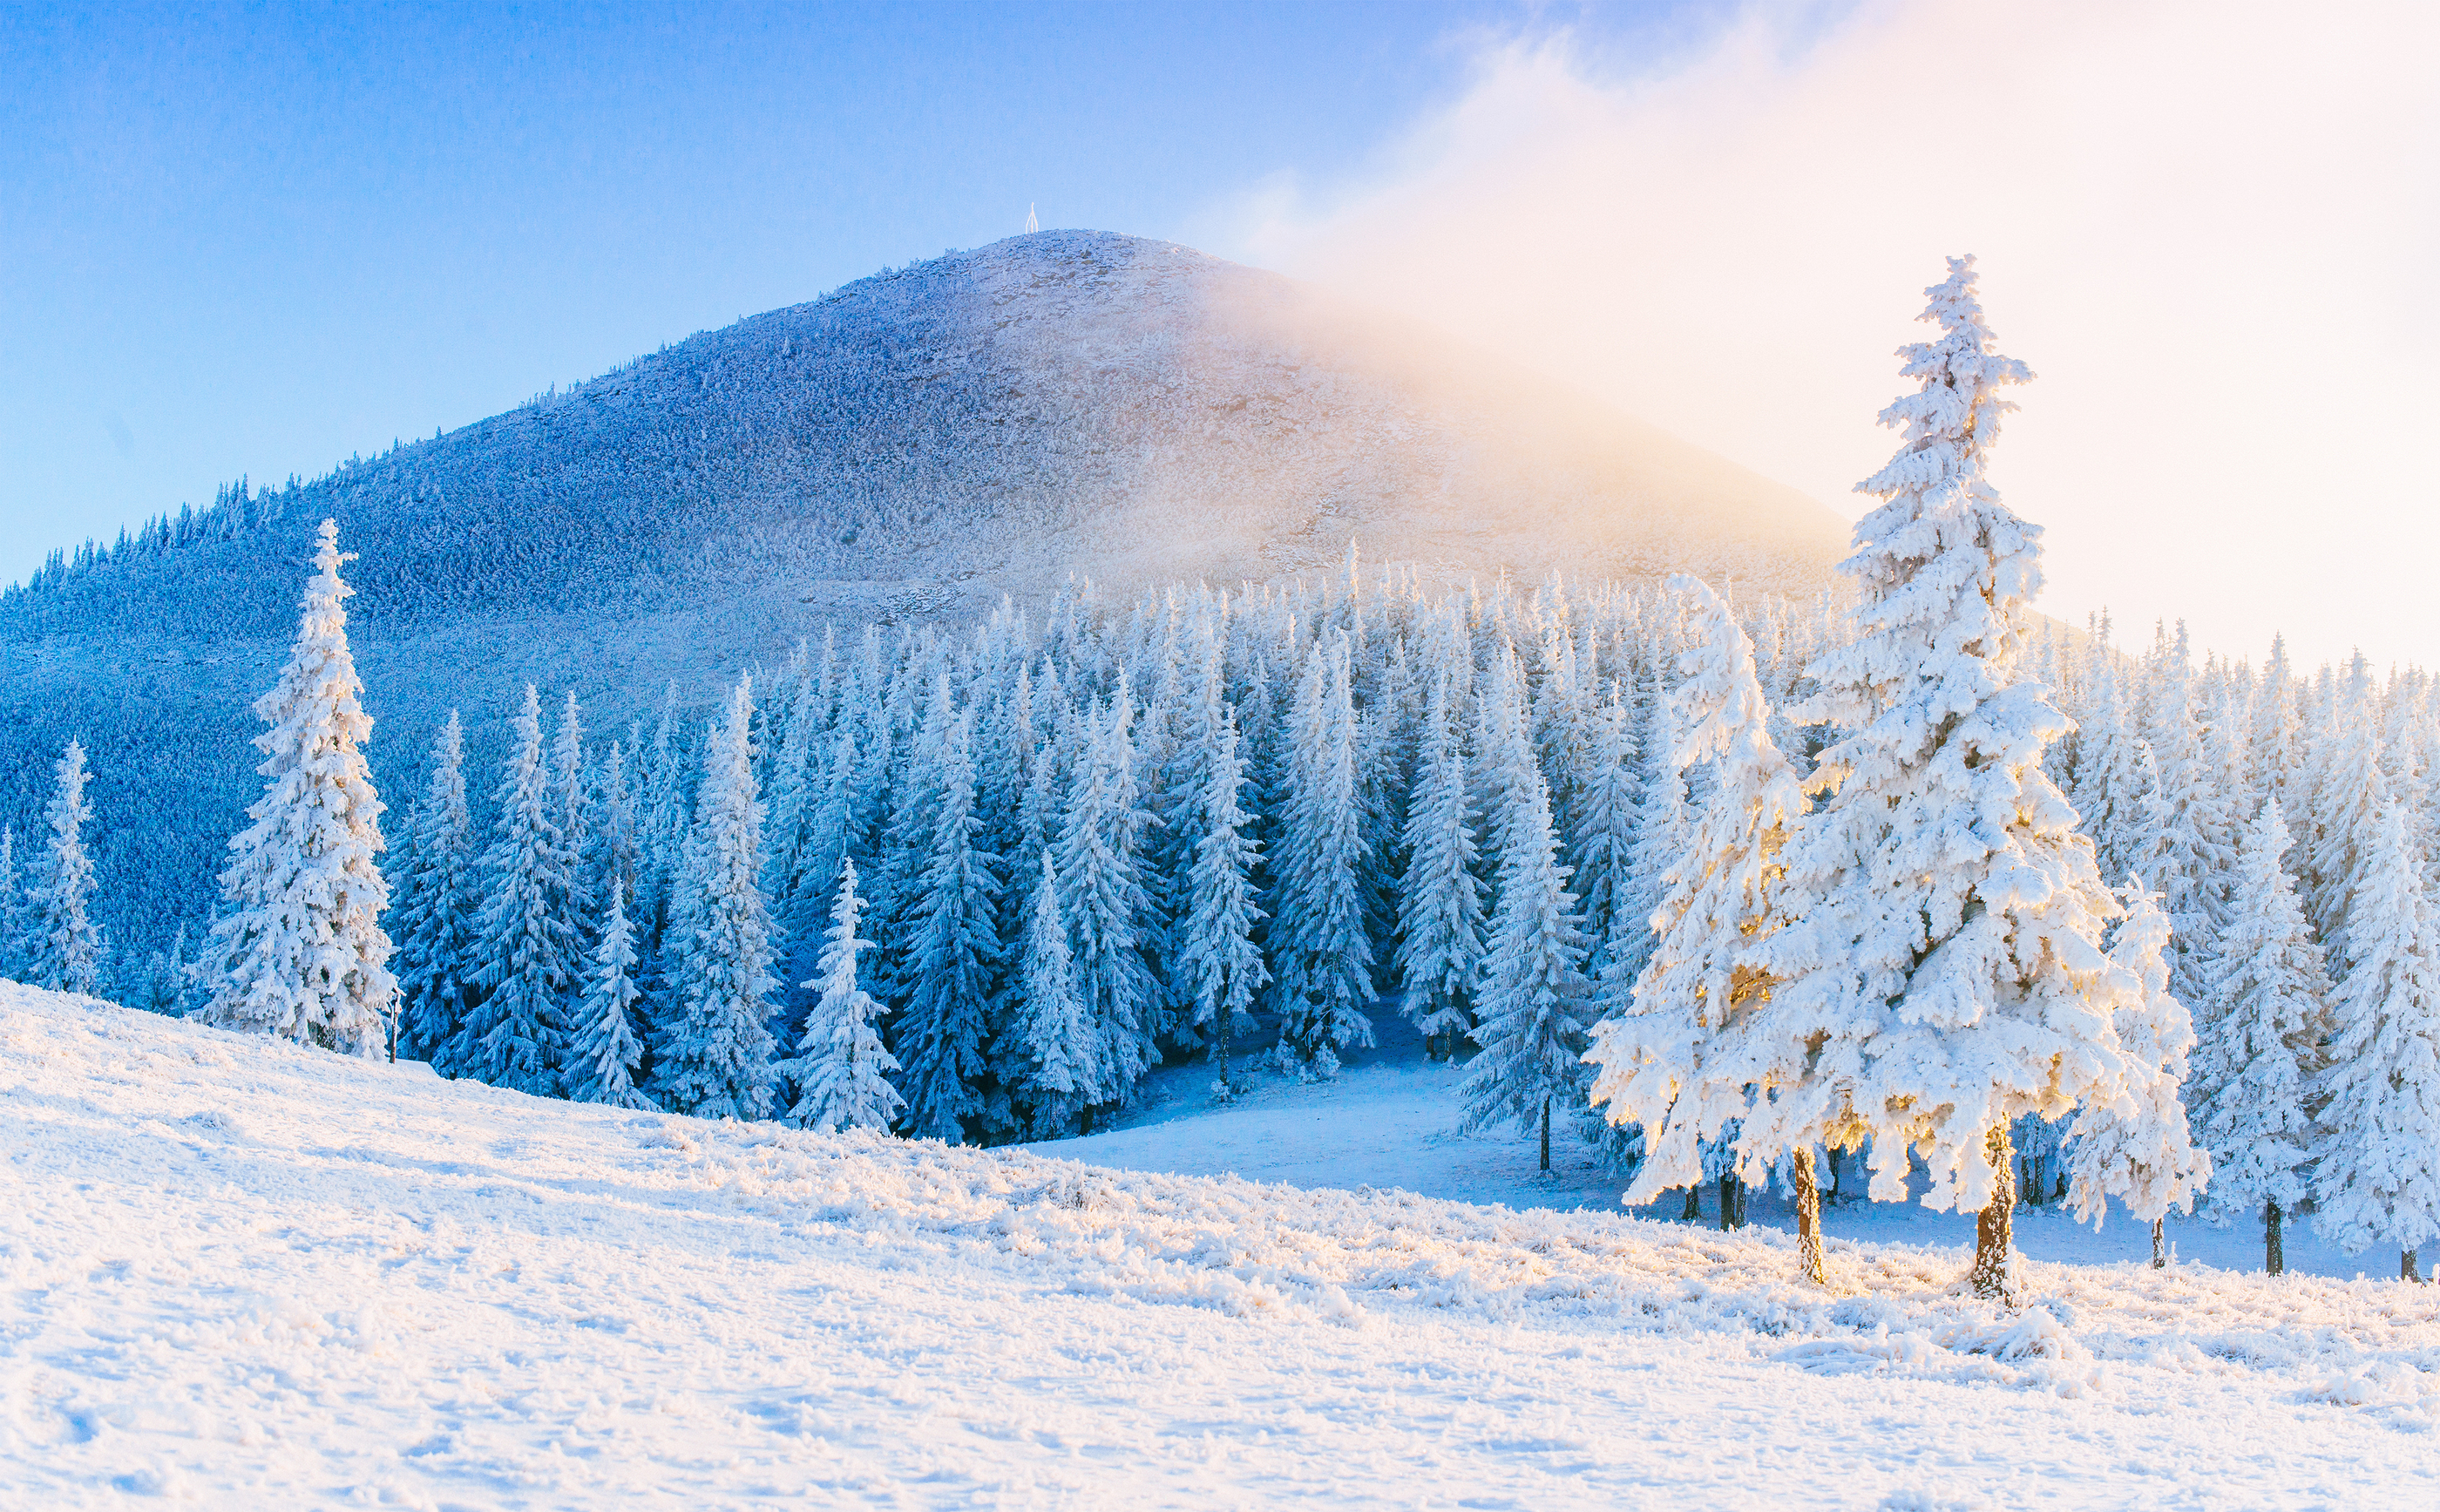 Snow filled forest